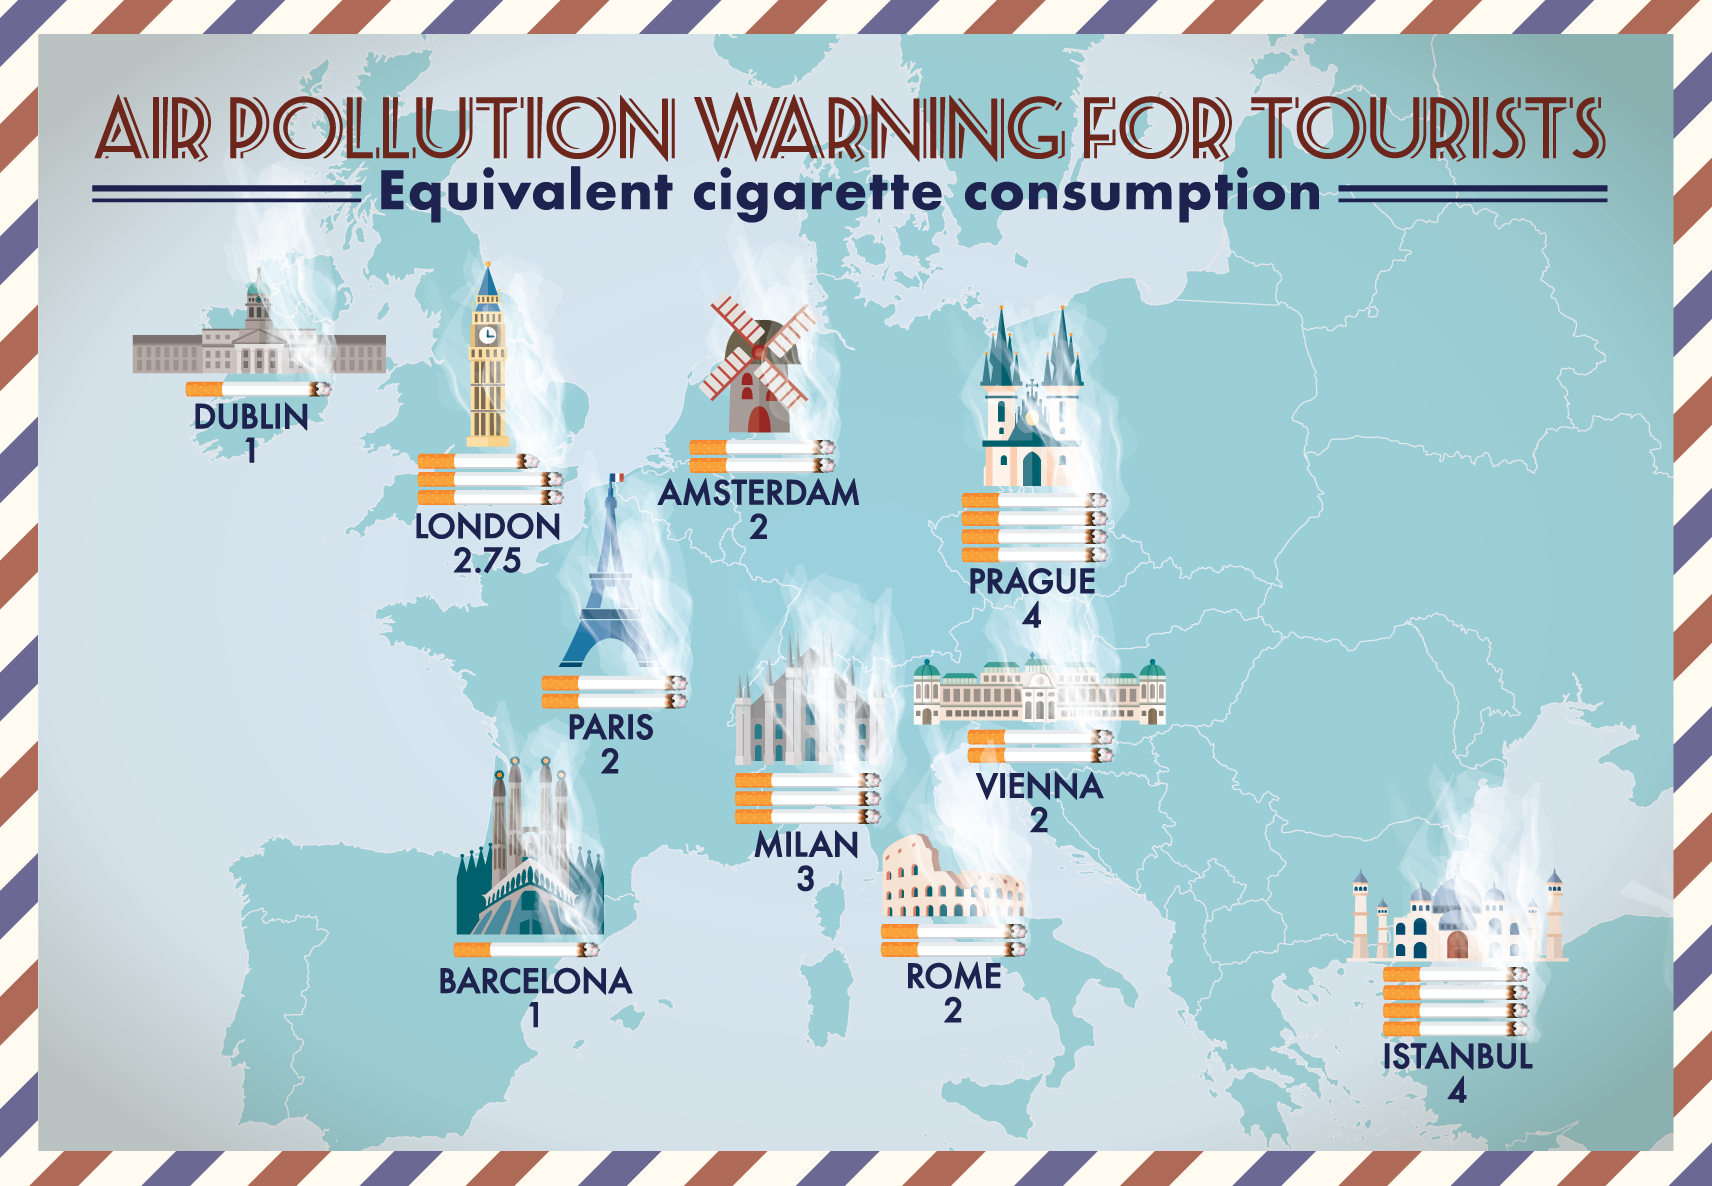 Smoked cigarettes per city - Transport & Environment